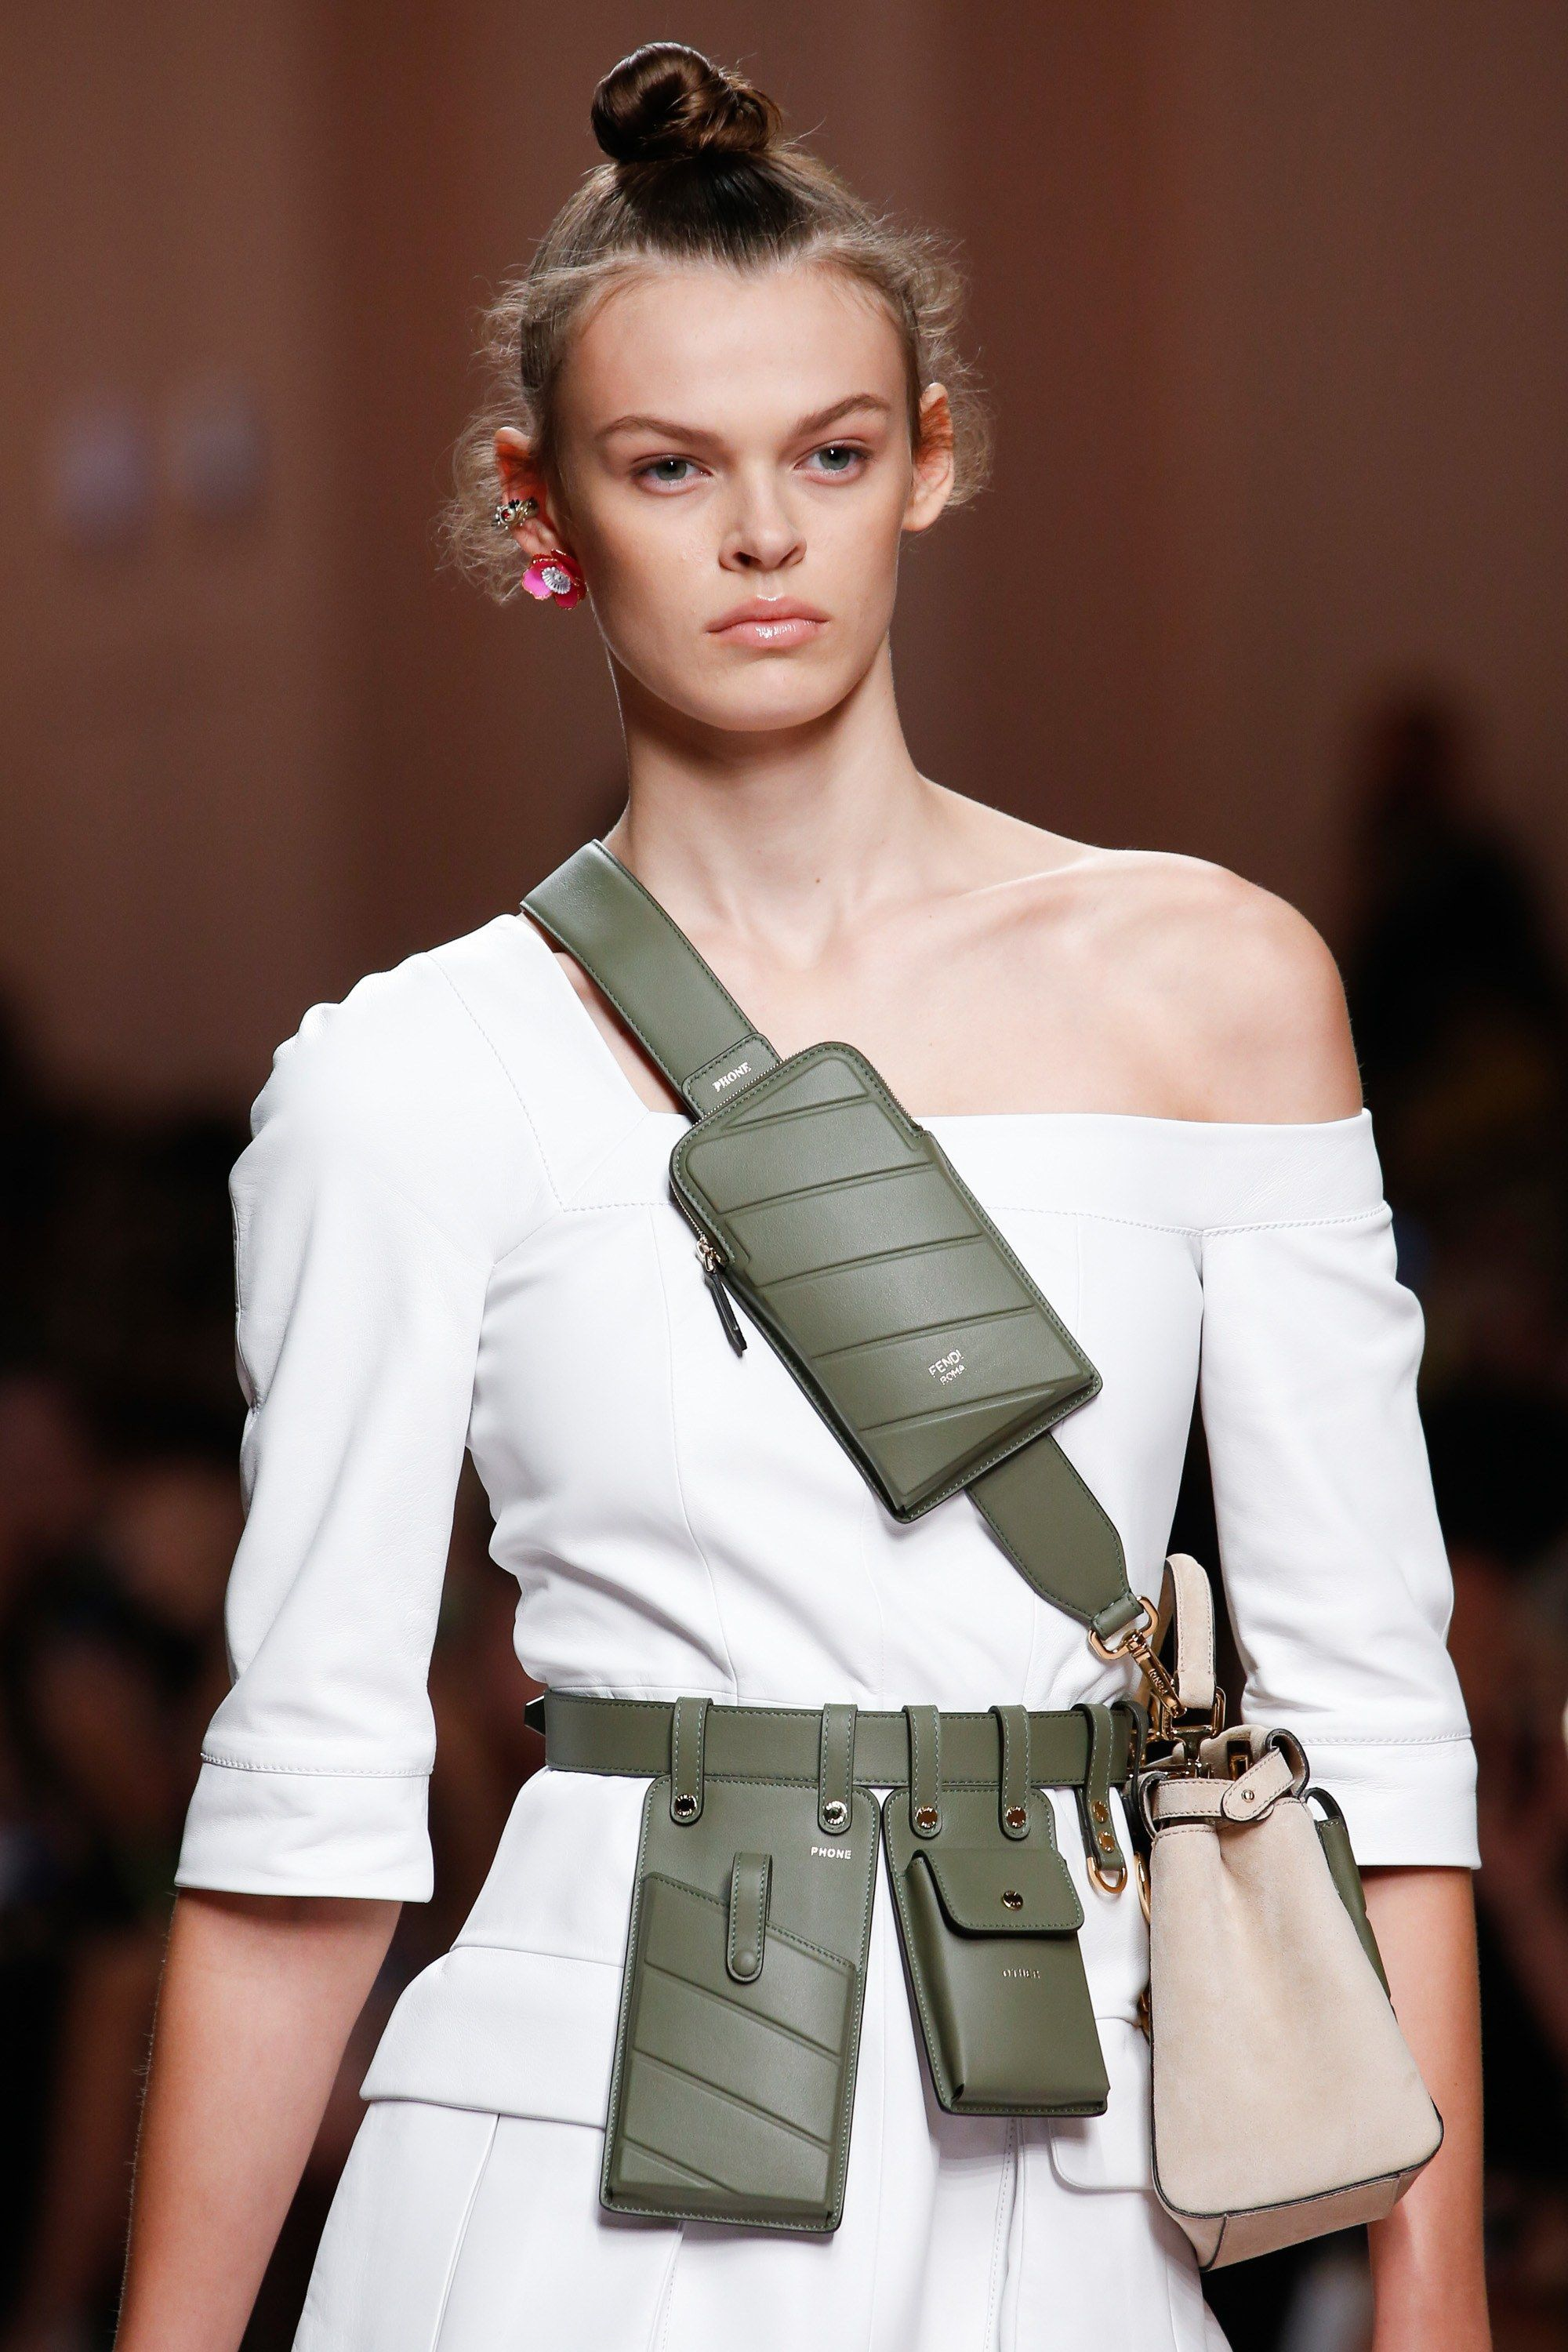 The Top 10 Accessories Trends Of Spring 2019 Fashion Accessories Trends Trending Accessories Emerging Designers Fashion